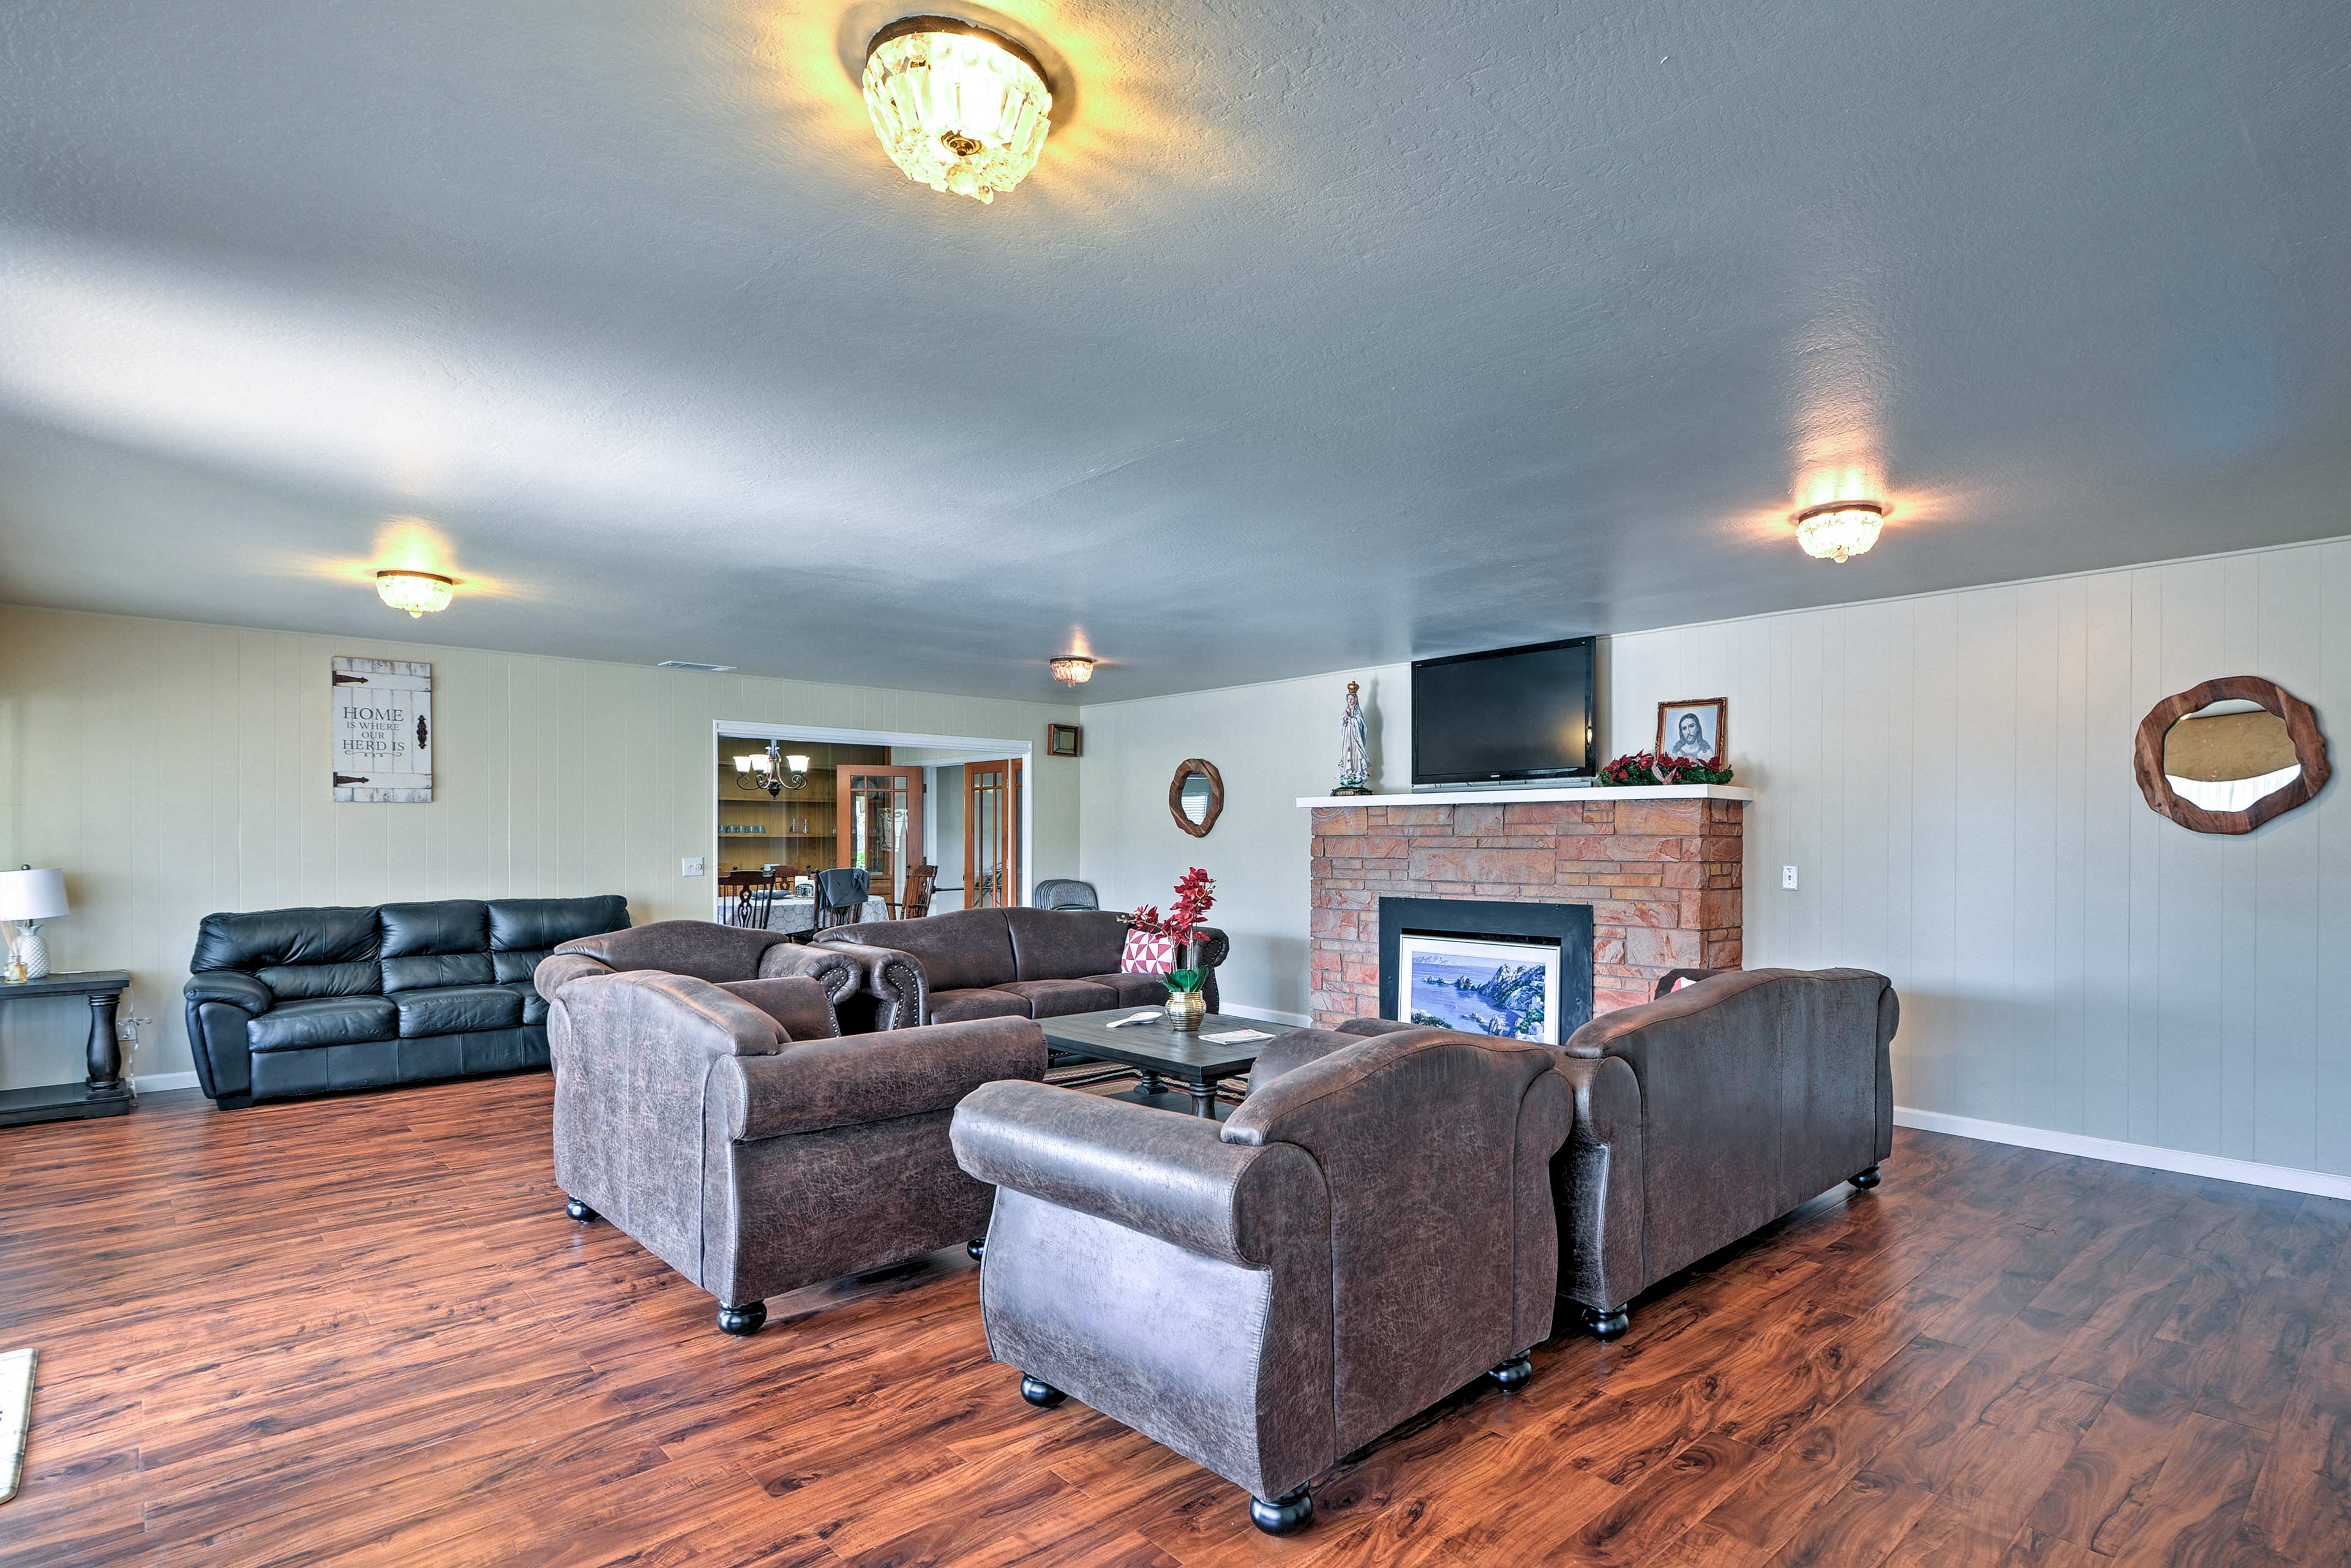 Up to 11 guests can spread out in 2,500 square feet of living space.